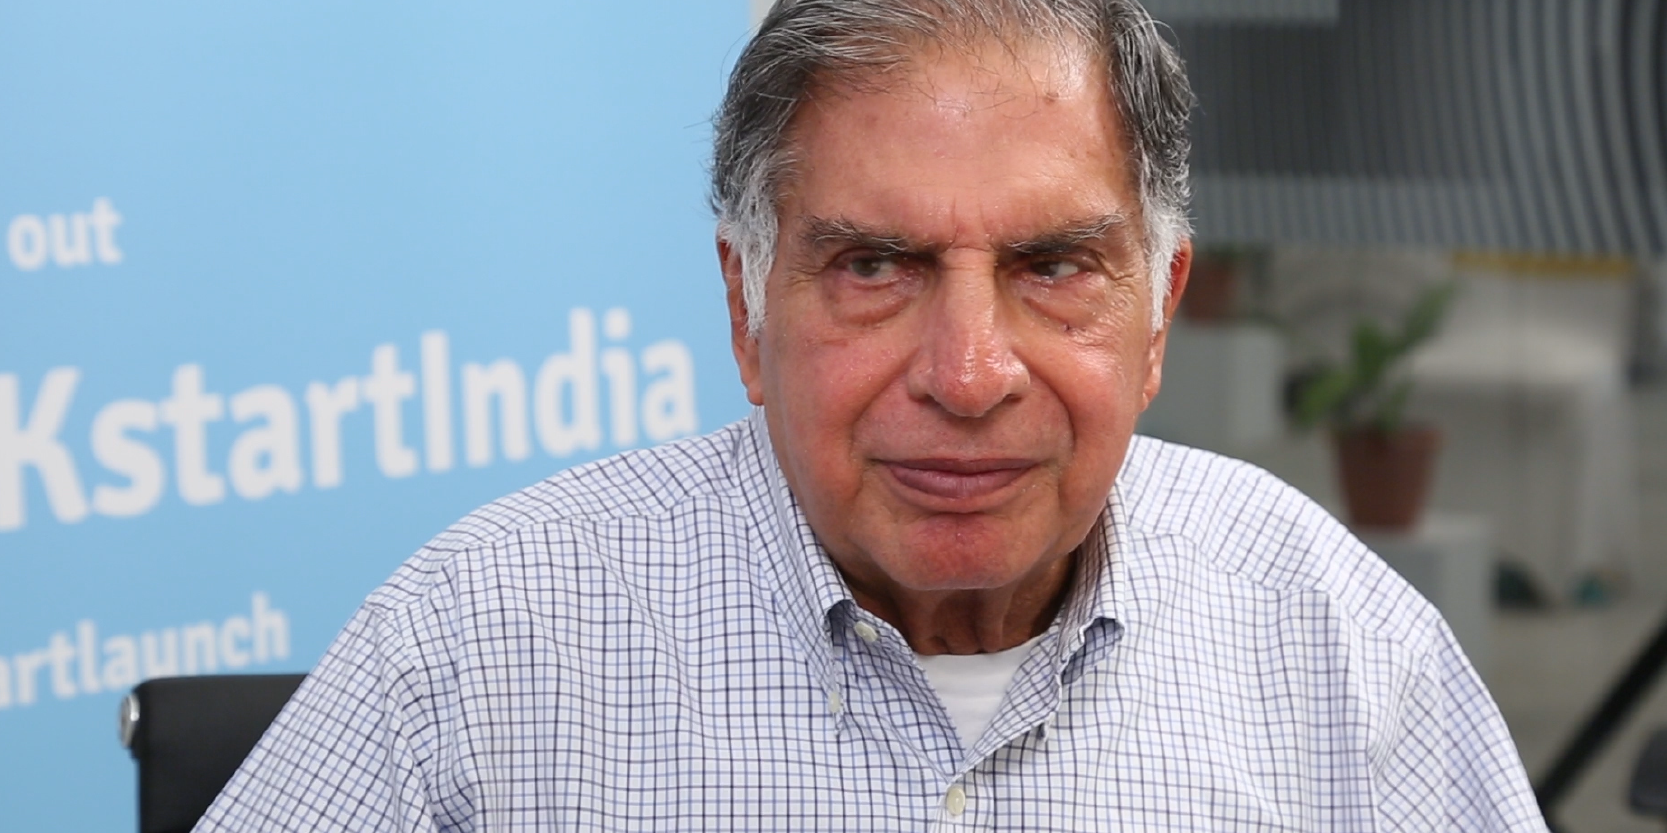 There's no shortcut to building trust :   Ratan Tata in a Q&A at Kstart launch, event in Bangalore